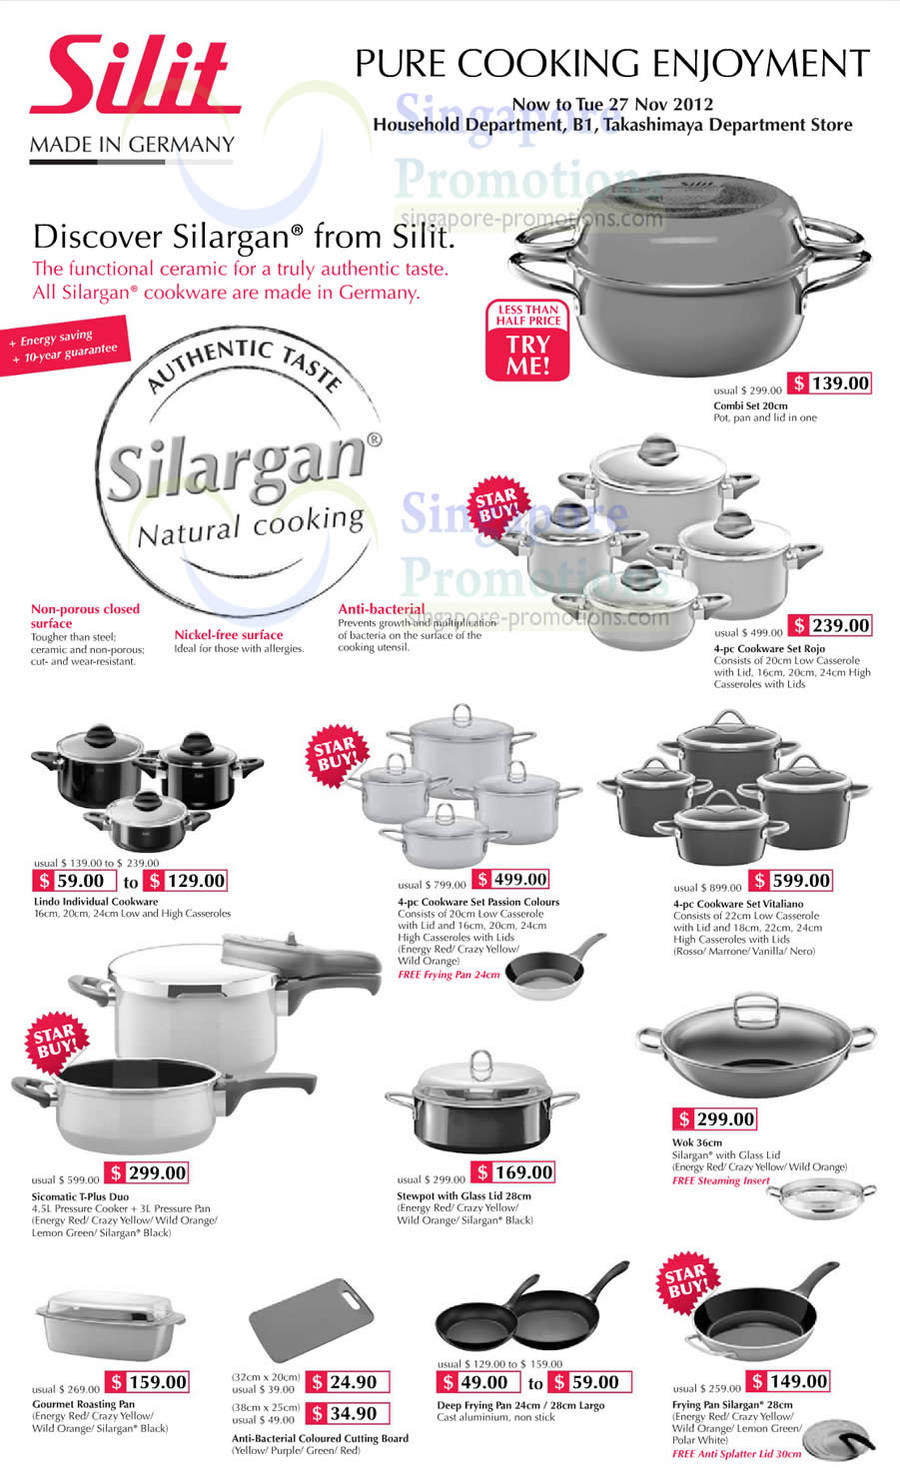 takashimaya silit silargan kitchenware promotion offers 16. Black Bedroom Furniture Sets. Home Design Ideas